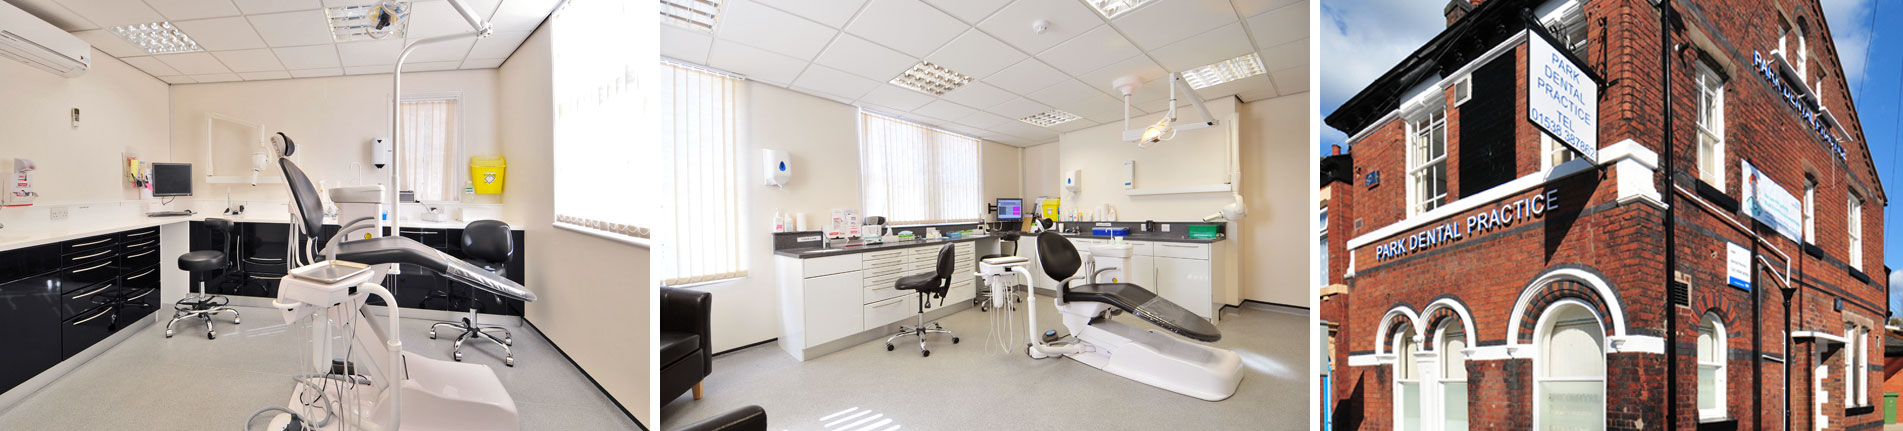 Park Dental - surgery design and fit out